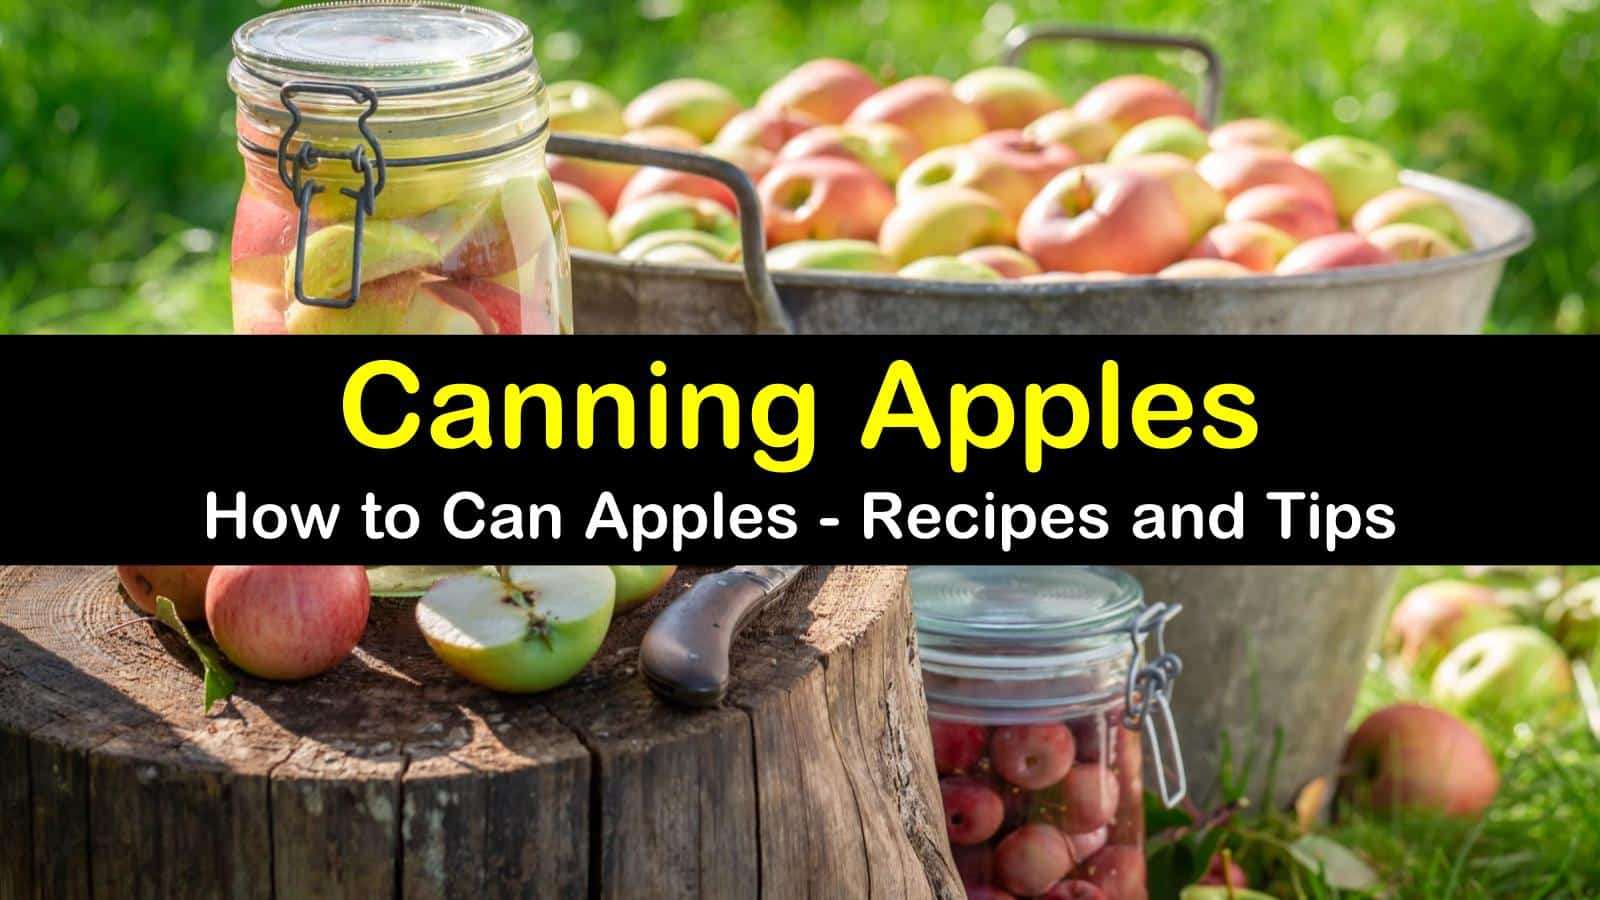 canning apples titleimg1